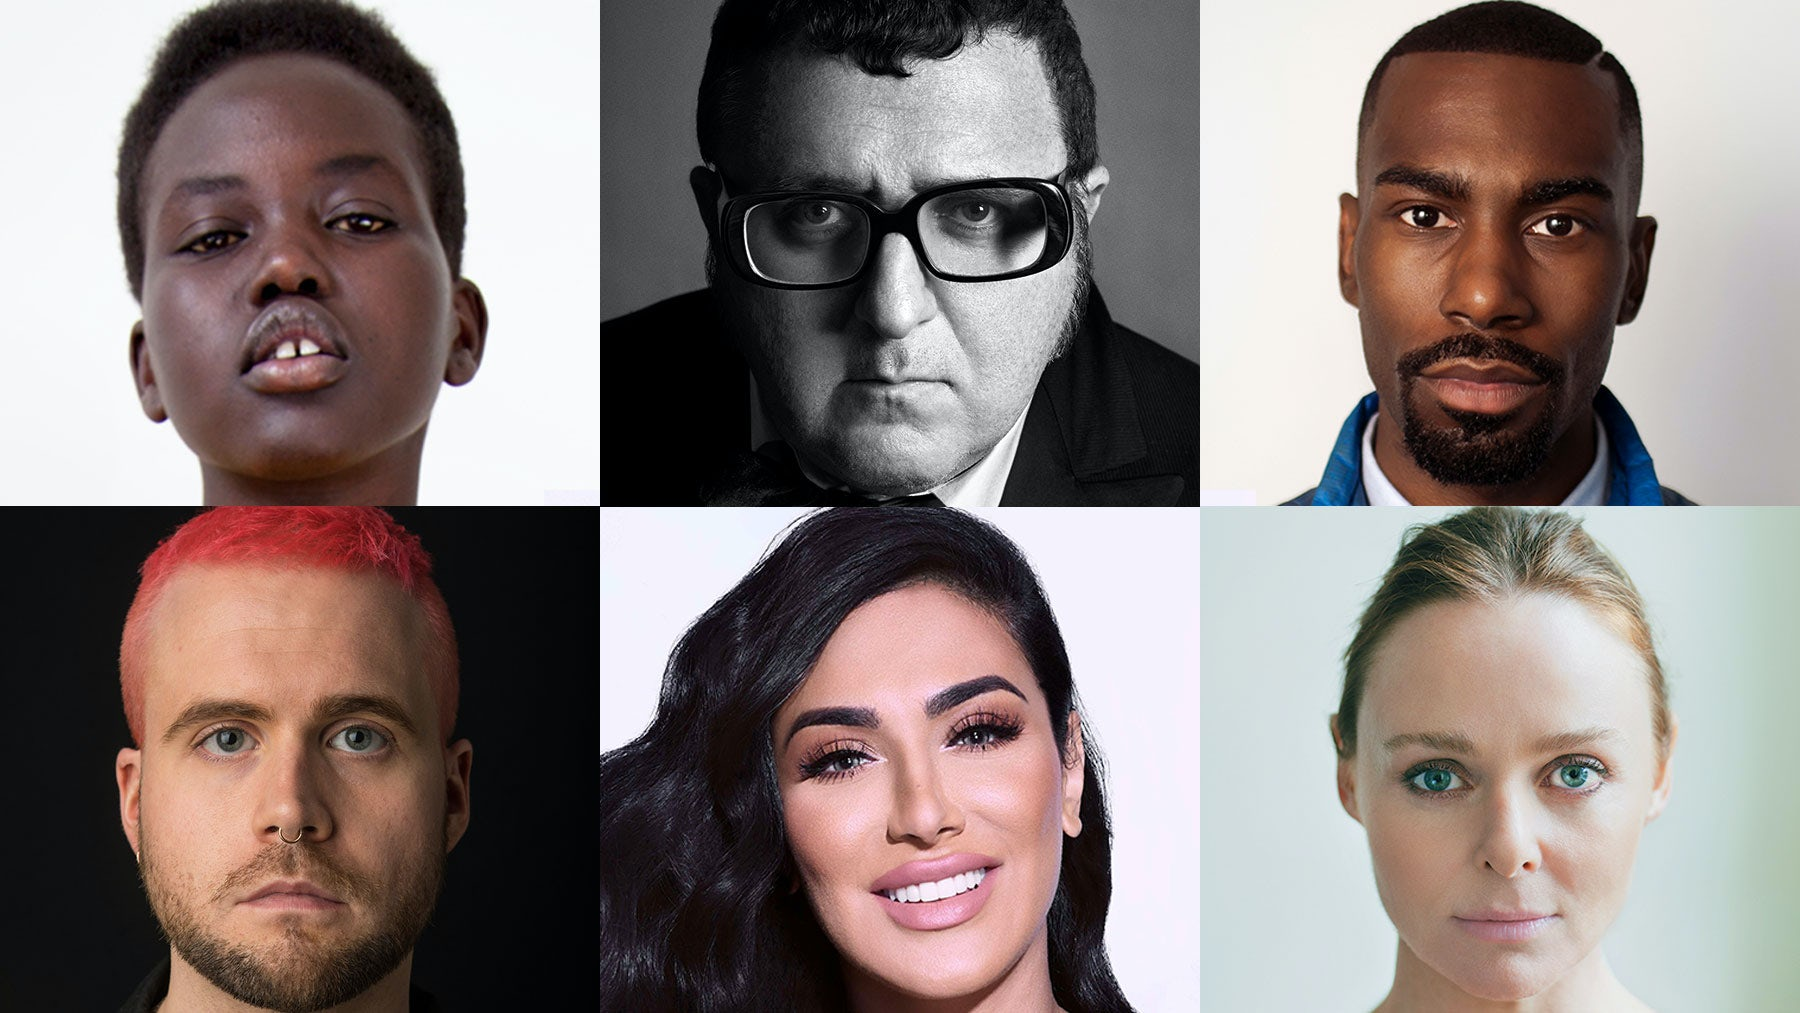 Adut Akech, Alber Elbaz, DeRay Mckesson, Christopher Wylie, Huda Kattan, Stella McCartney | Source: Courtesy